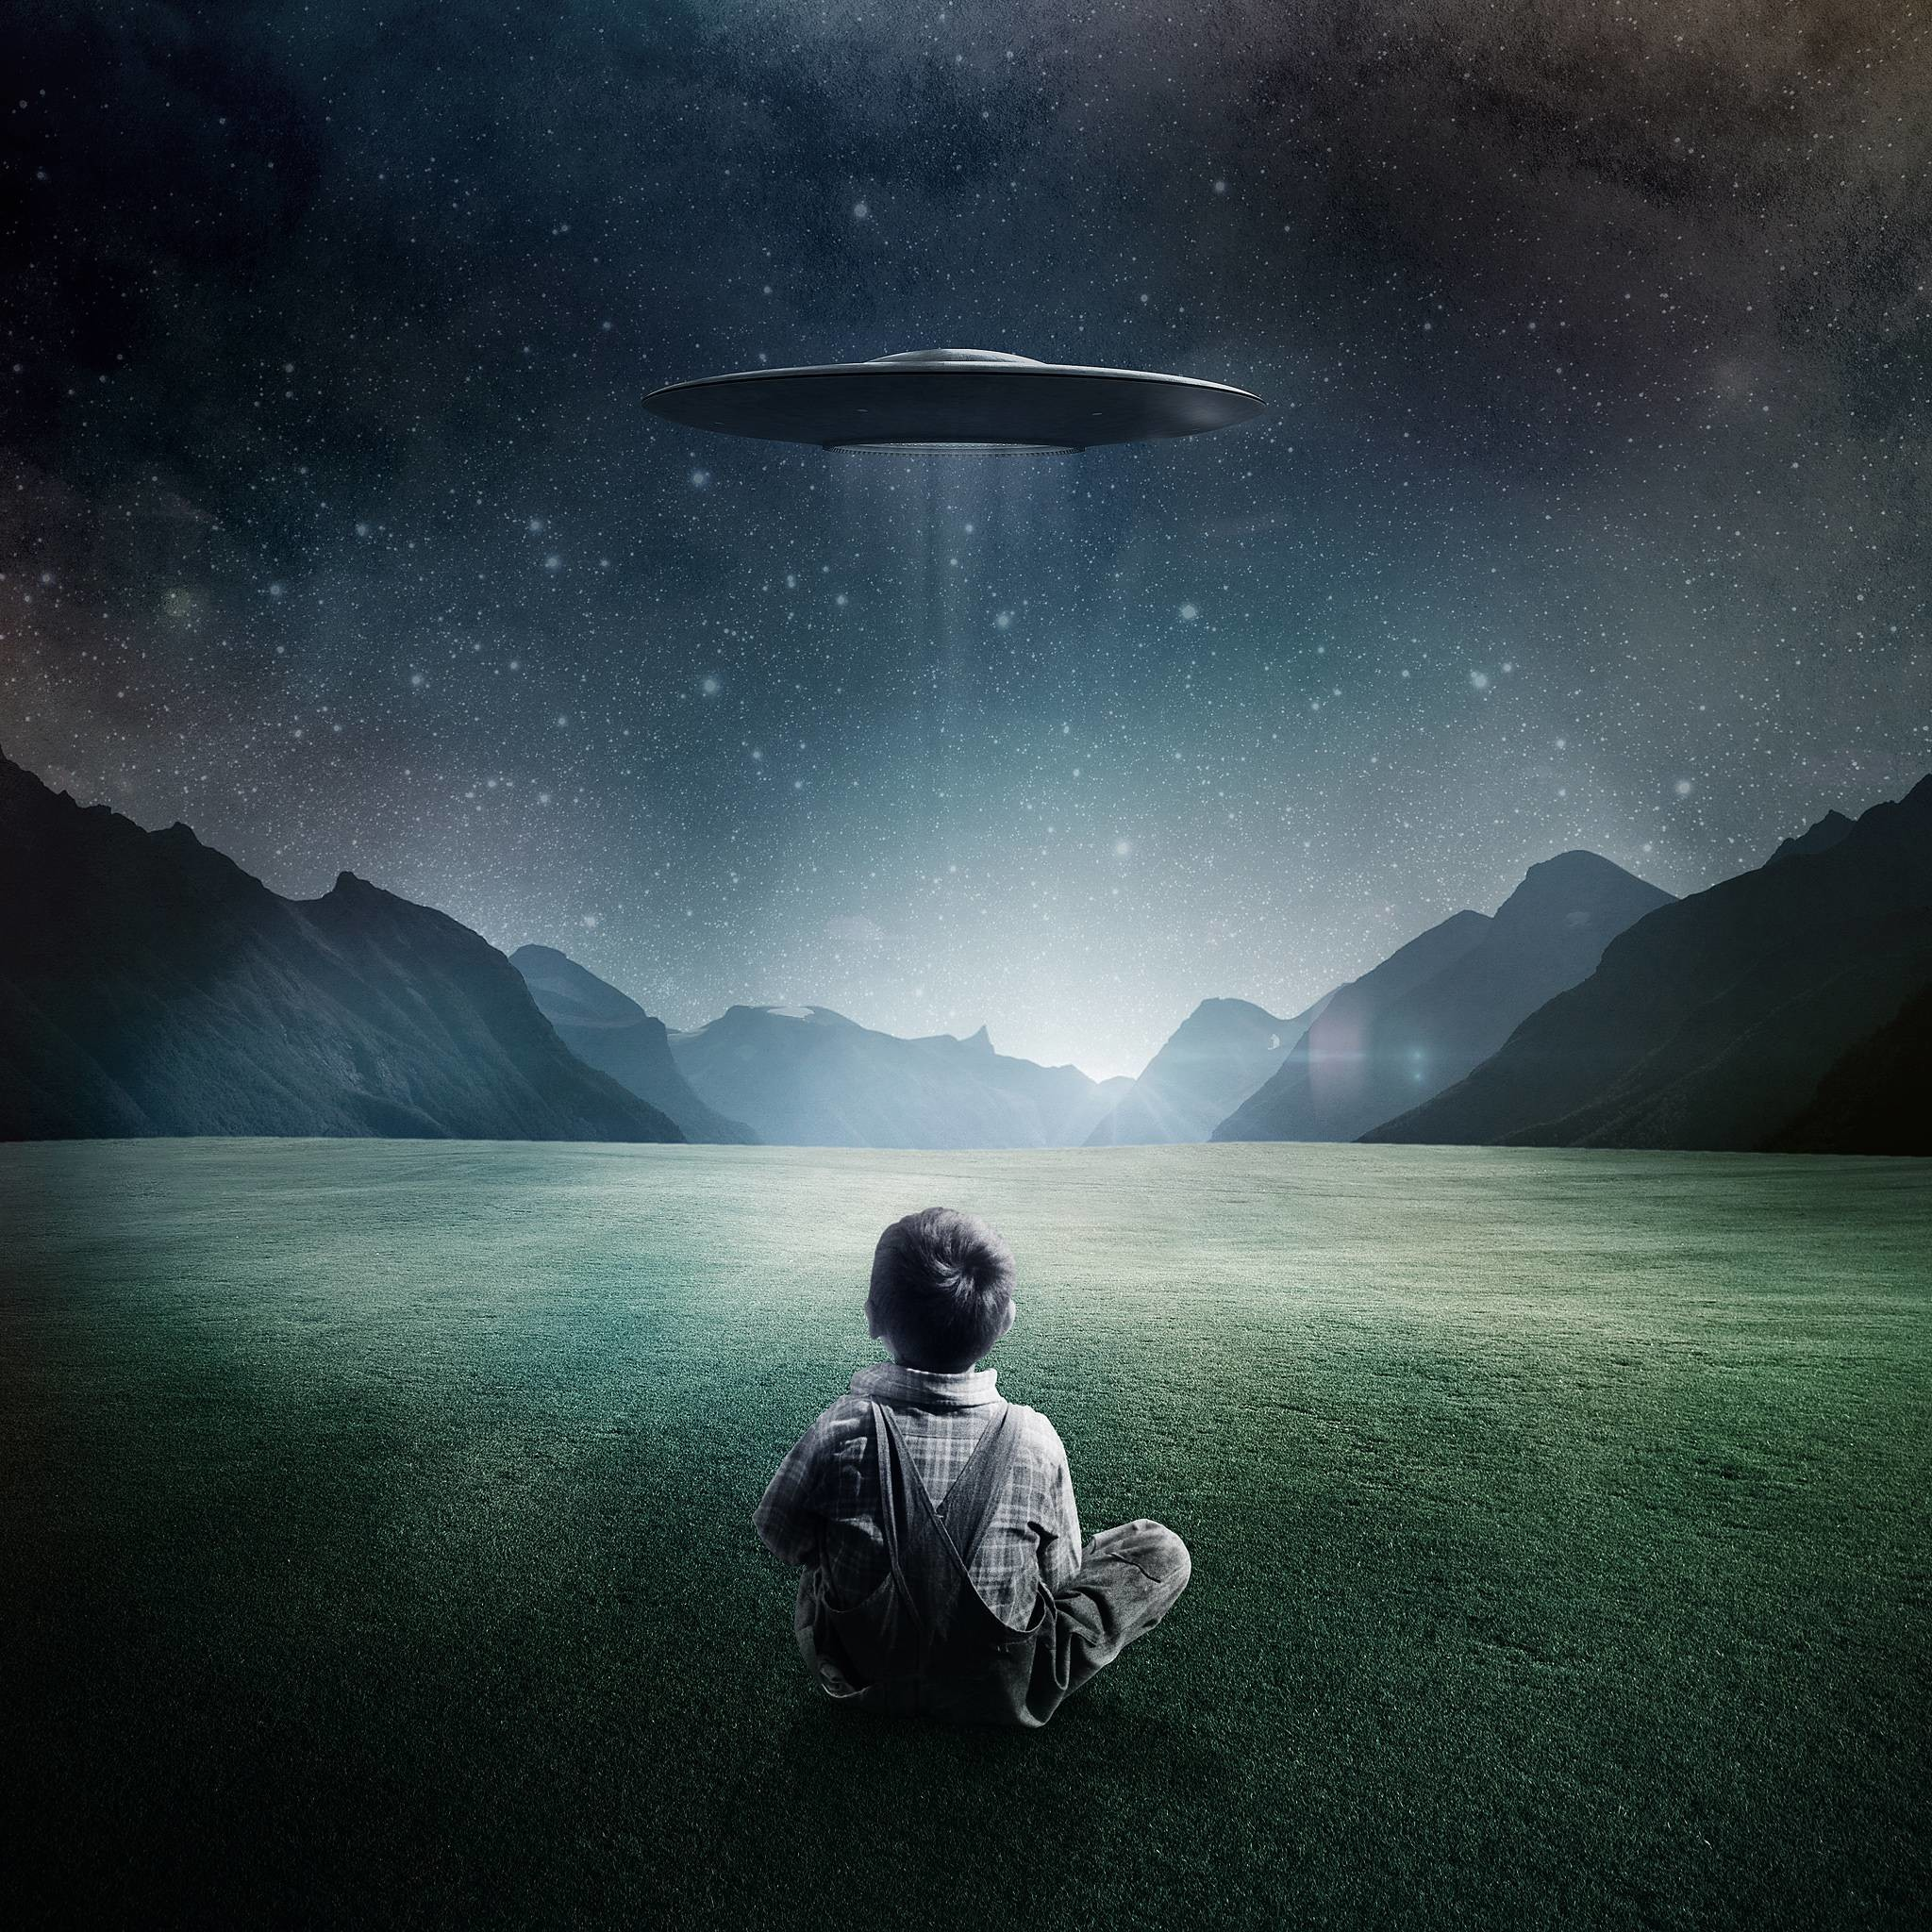 Wallpapers For > 3d Ufo Wallpaper